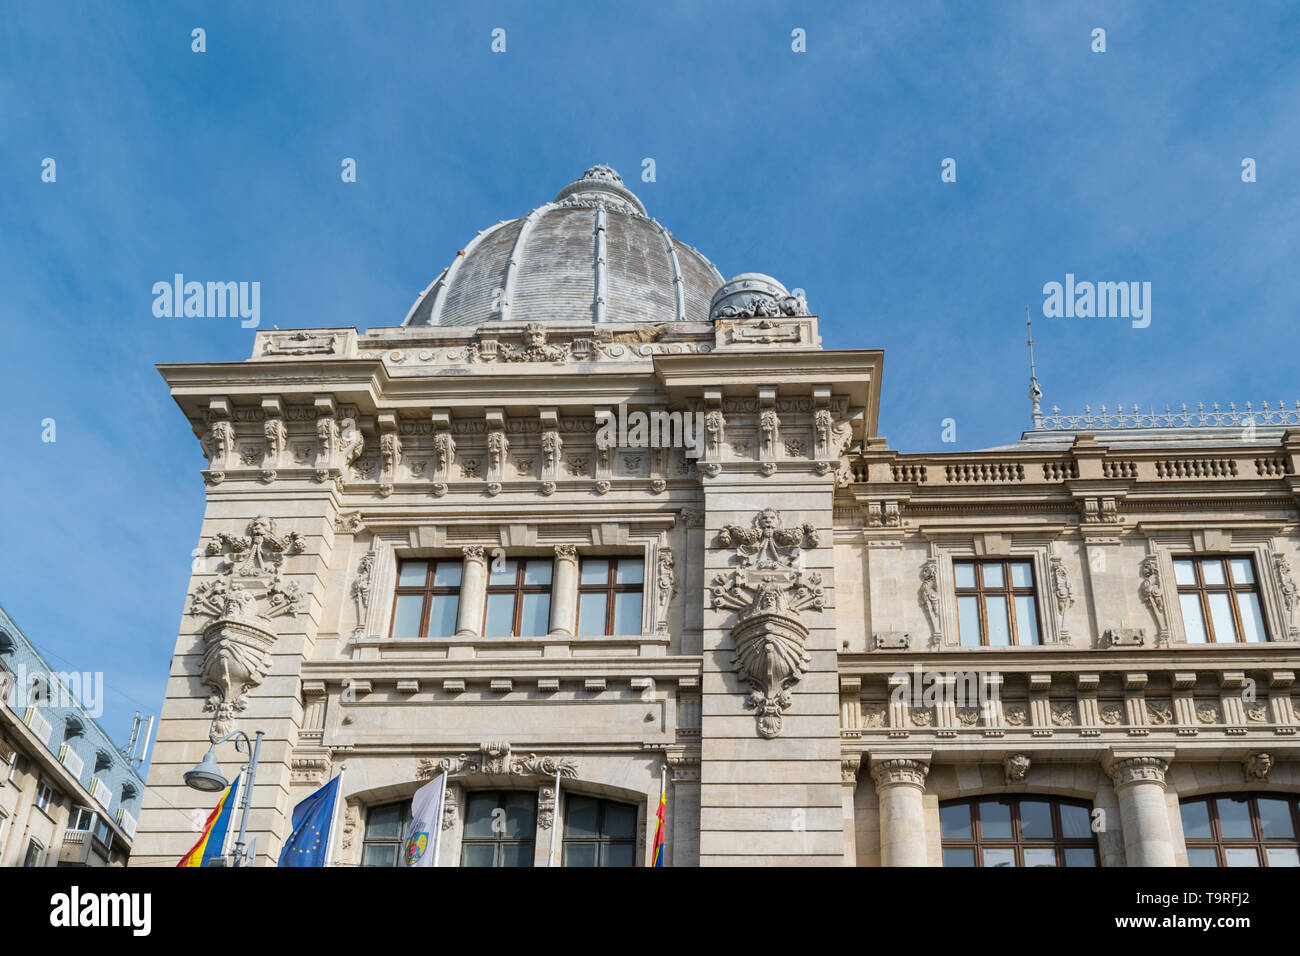 Bucharest, Romania - March 16, 2019: close up detail of dome at the Romania National History Museum also known as the Postal Palace. - Stock Image